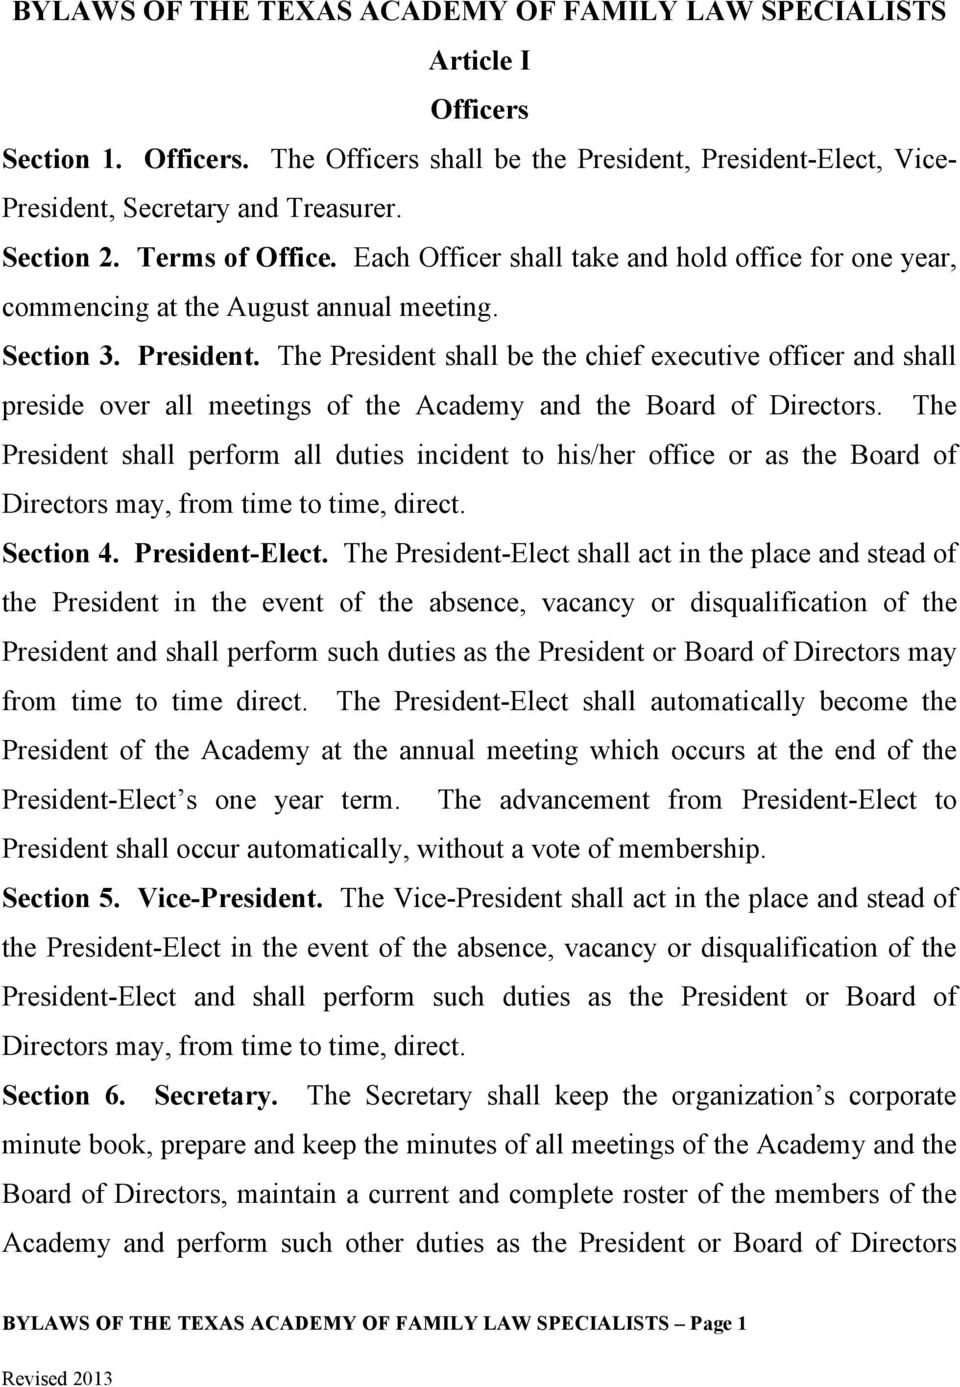 The President shall be the chief executive officer and shall preside over all meetings of the Academy and the Board of Directors.